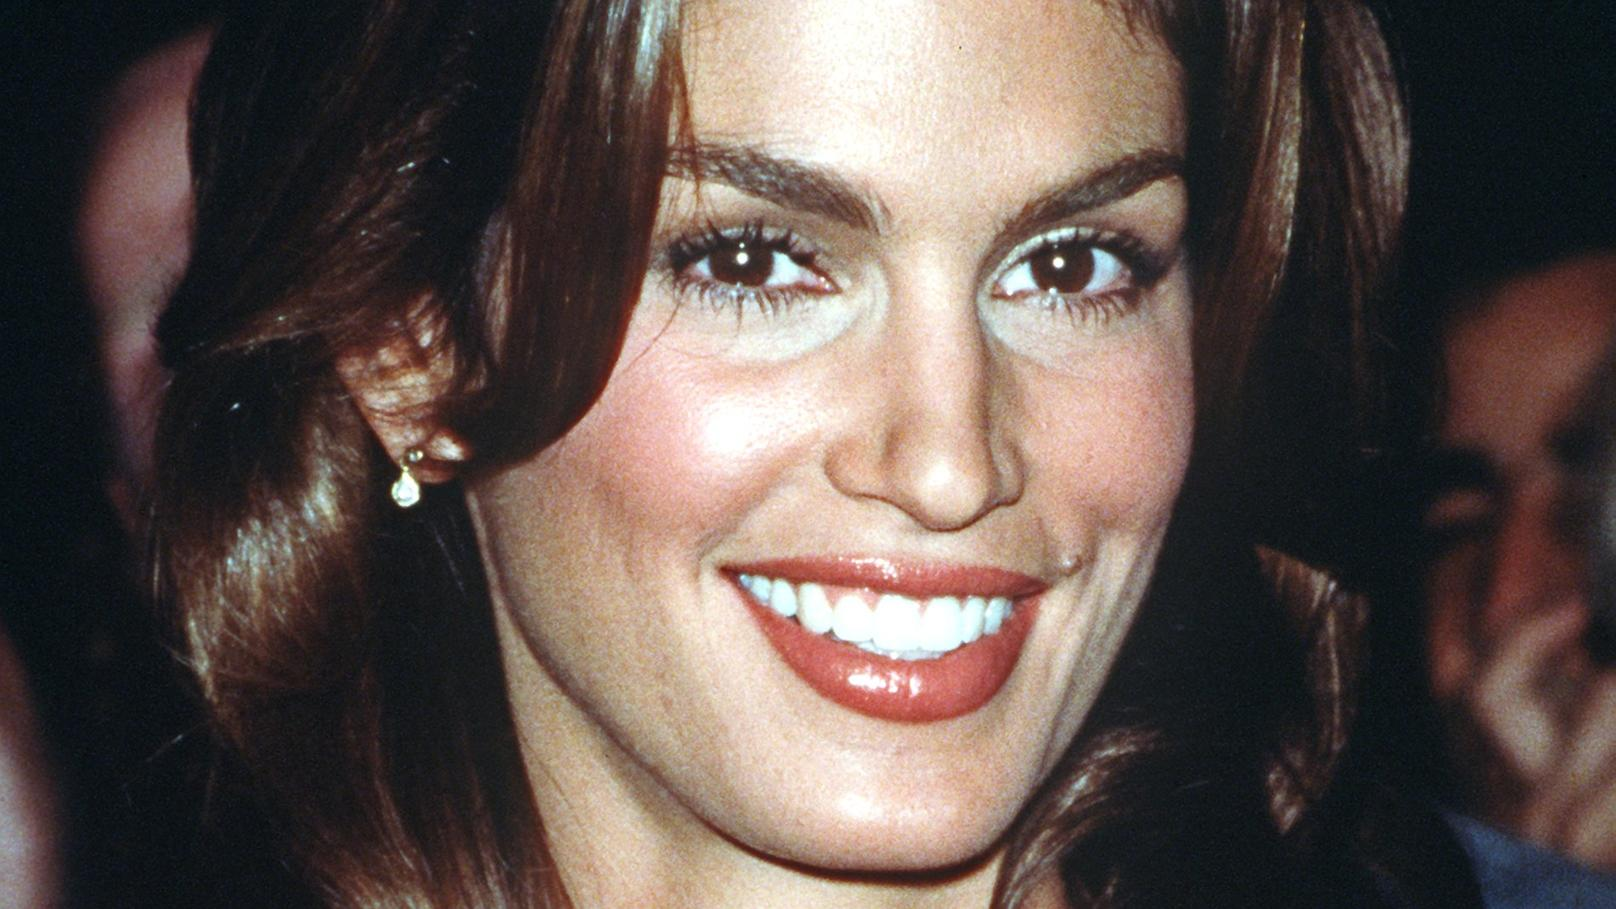 "Das amerikanische Supermodel Cindy Crawford am 14.9.1998 in New York, wo Christie Hefner einen Cocktailempfang für sie gab, nachdem Crawford auf dem Cover und in einer Fotogeschichte im ""Playboy"" erschienen war."